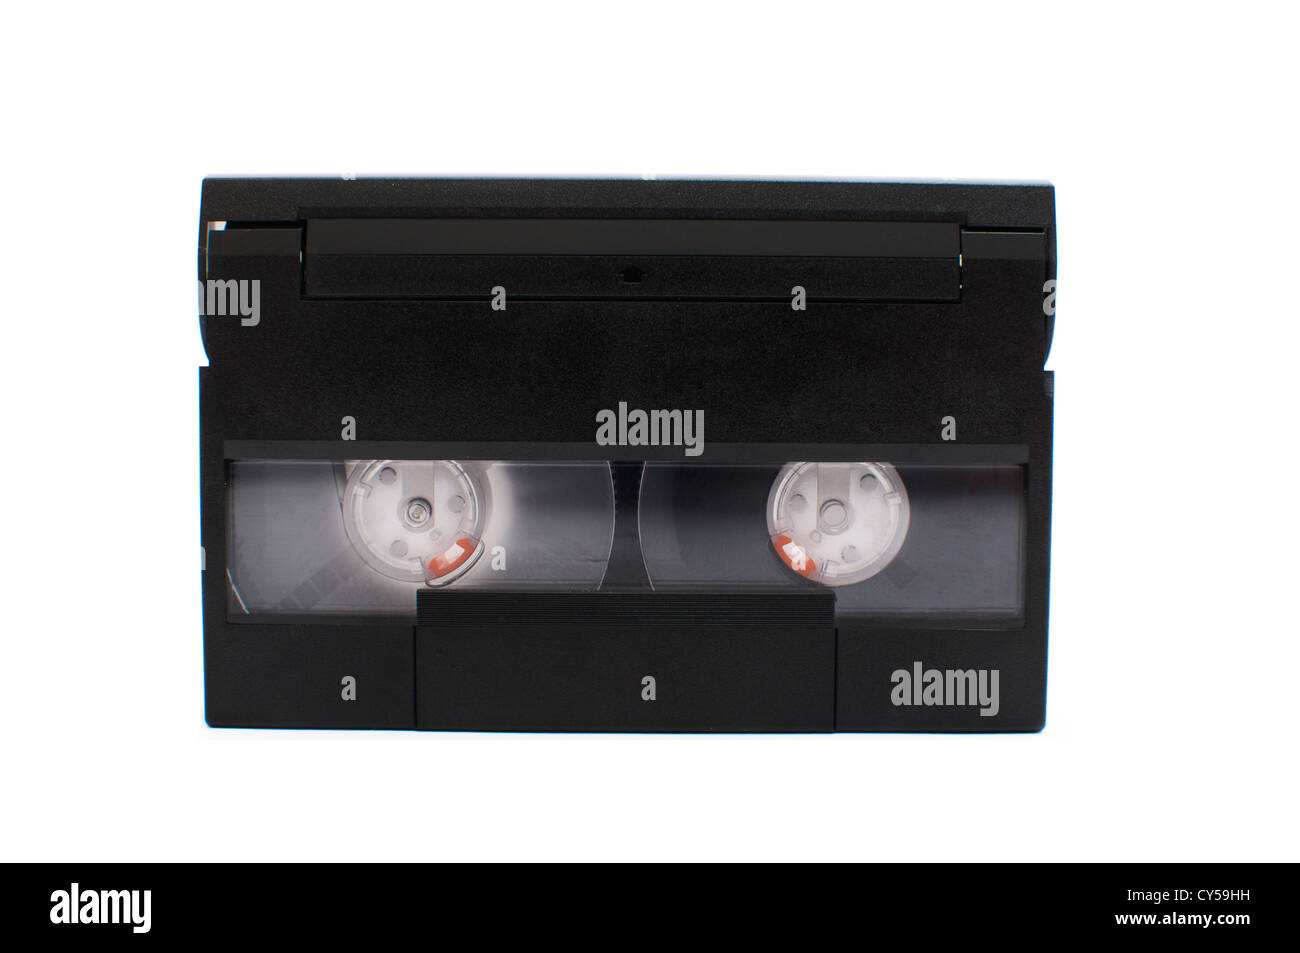 8mm Video Cassette isolated on white background - Stock Image